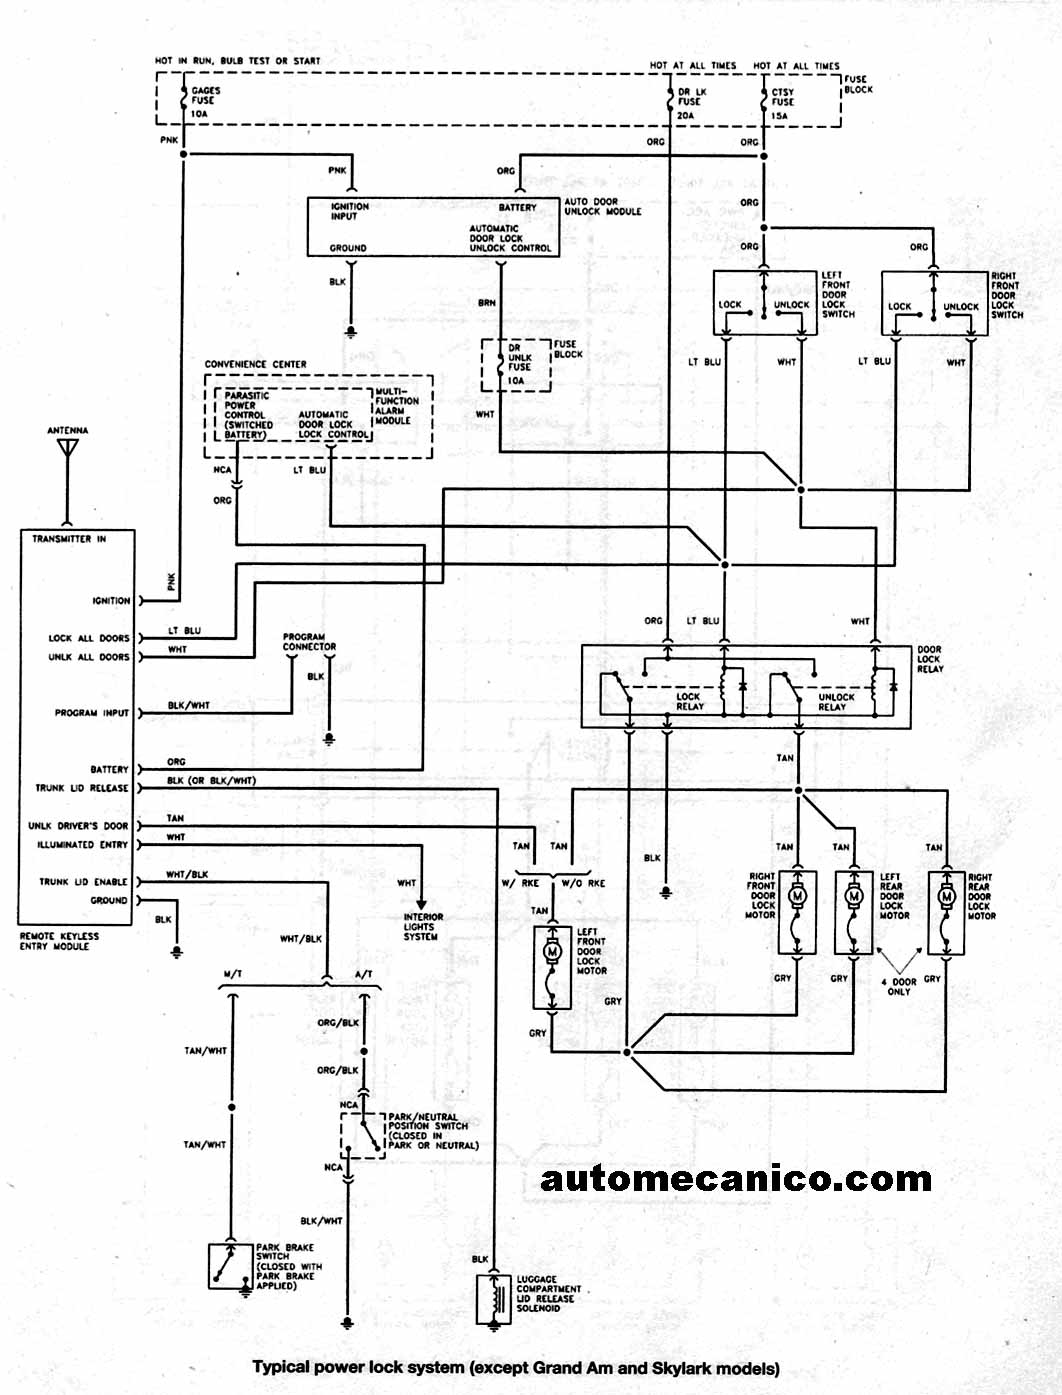 Gm Obd Ii Wiring Diagram 96 Firebird Auto Electrical Related With